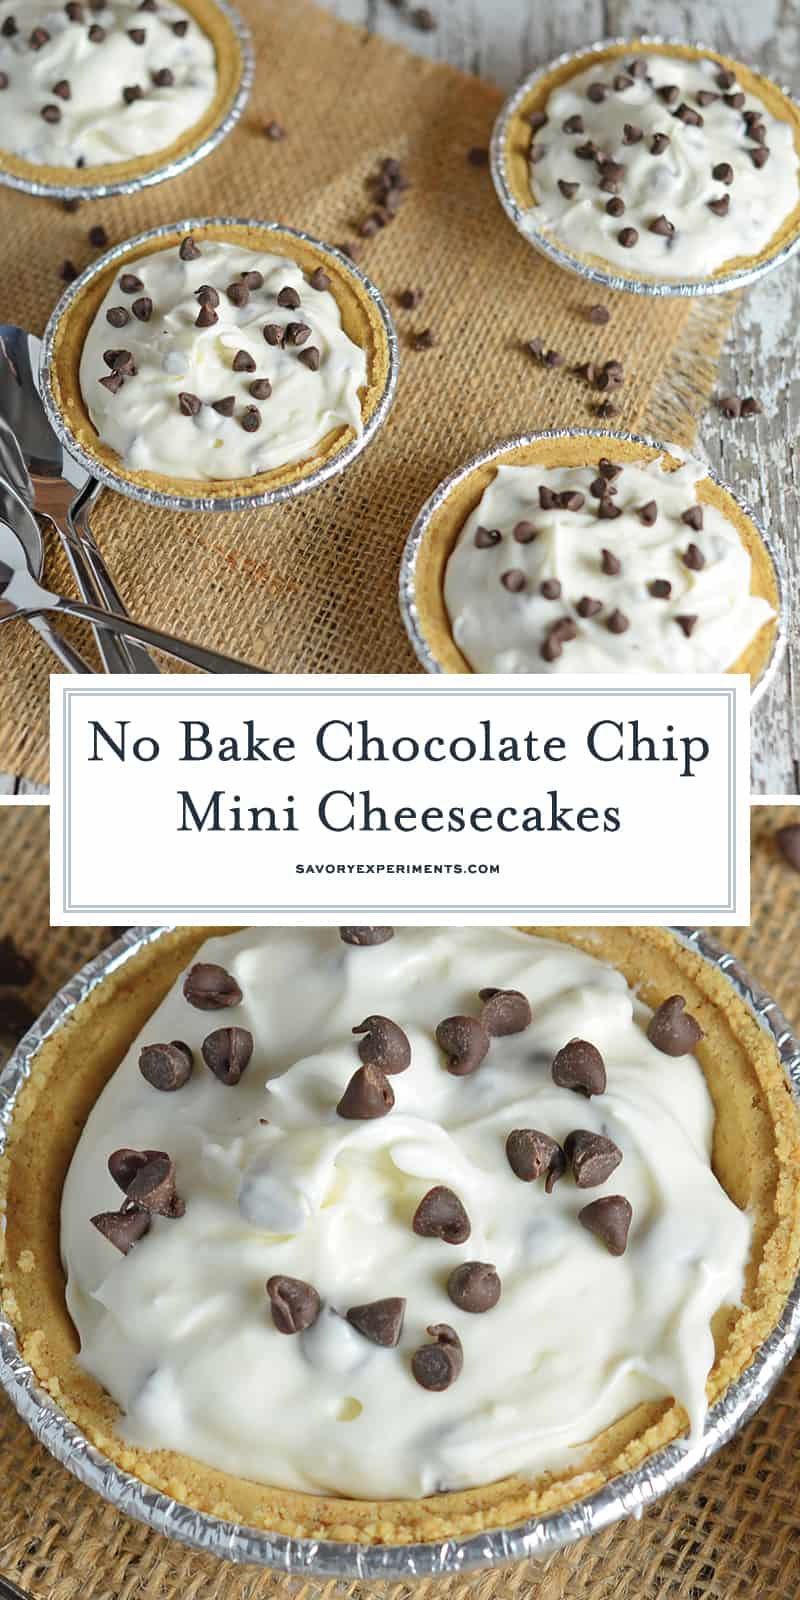 No Bake Chocolate Chip Mini Cheesecakes Recipe is an easy summer time no bake cheesecake recipe. Only takes 10 minutes to make and everyone will enjoy them! #minicheesecakerecipe #nobakecheesecakerecipe #chocolatechipcheesecake www.savoryexperiments.com